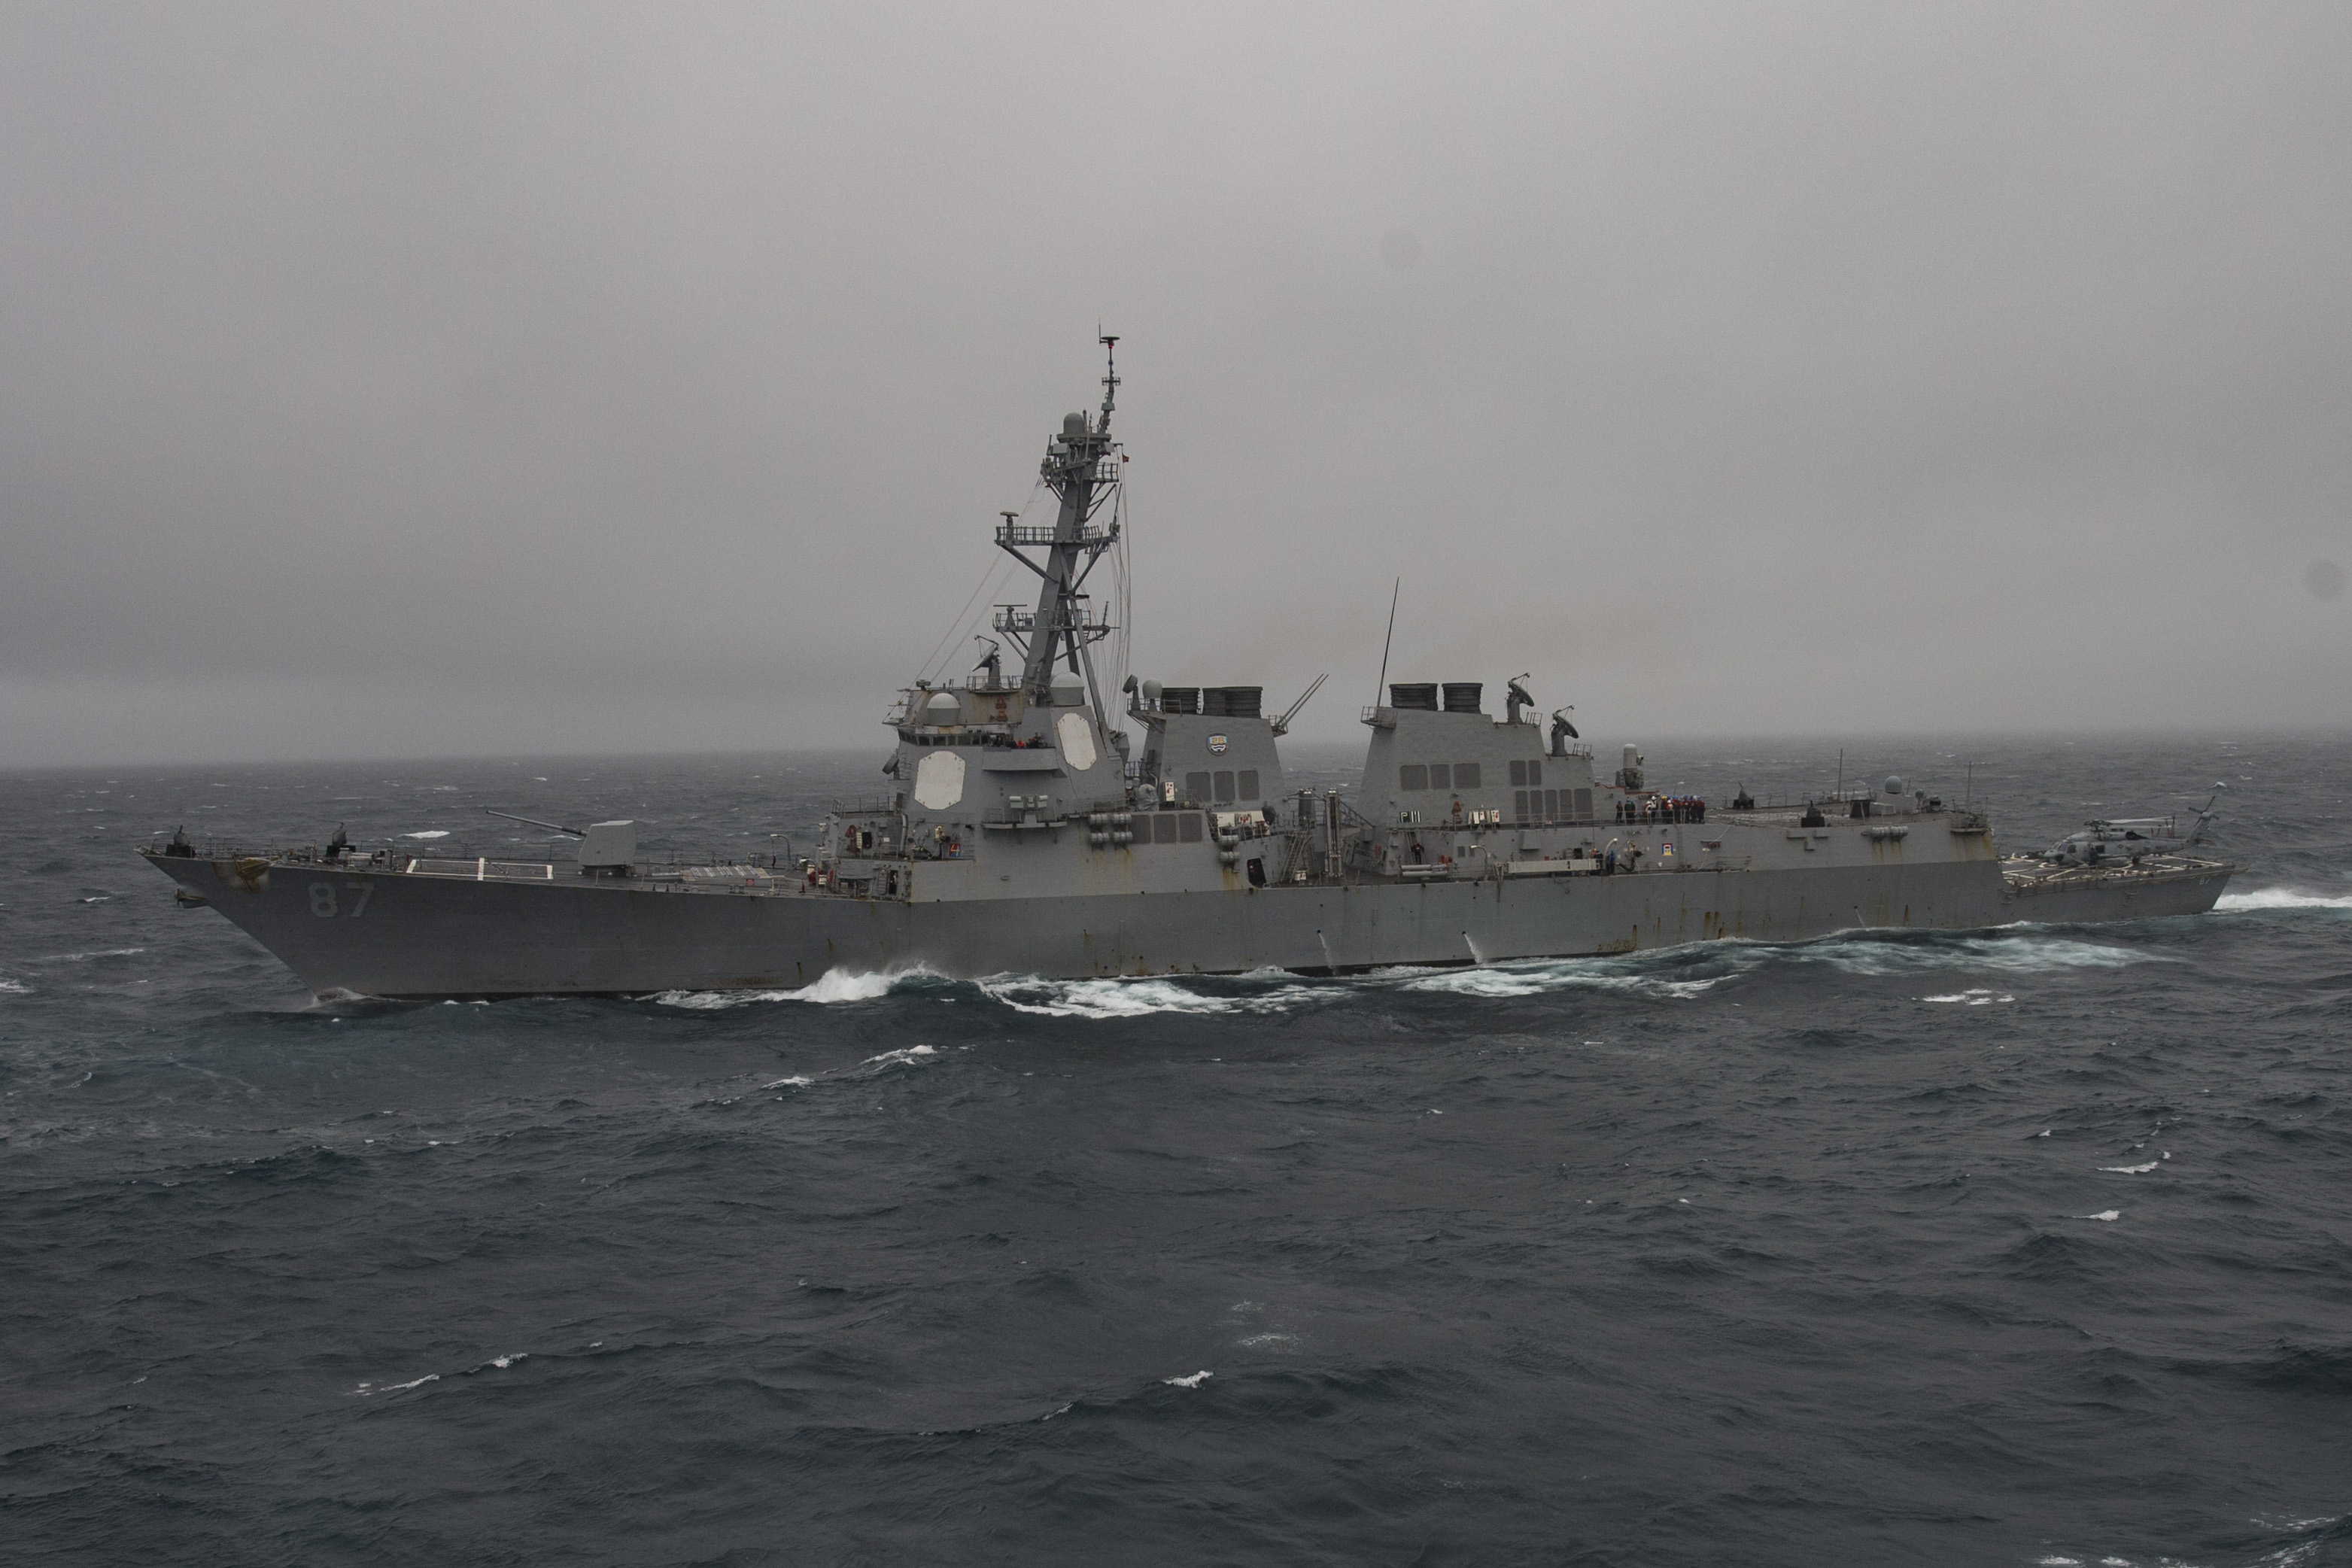 USS Mason (DDG-87) on June 6, 2016. US Navy Photo